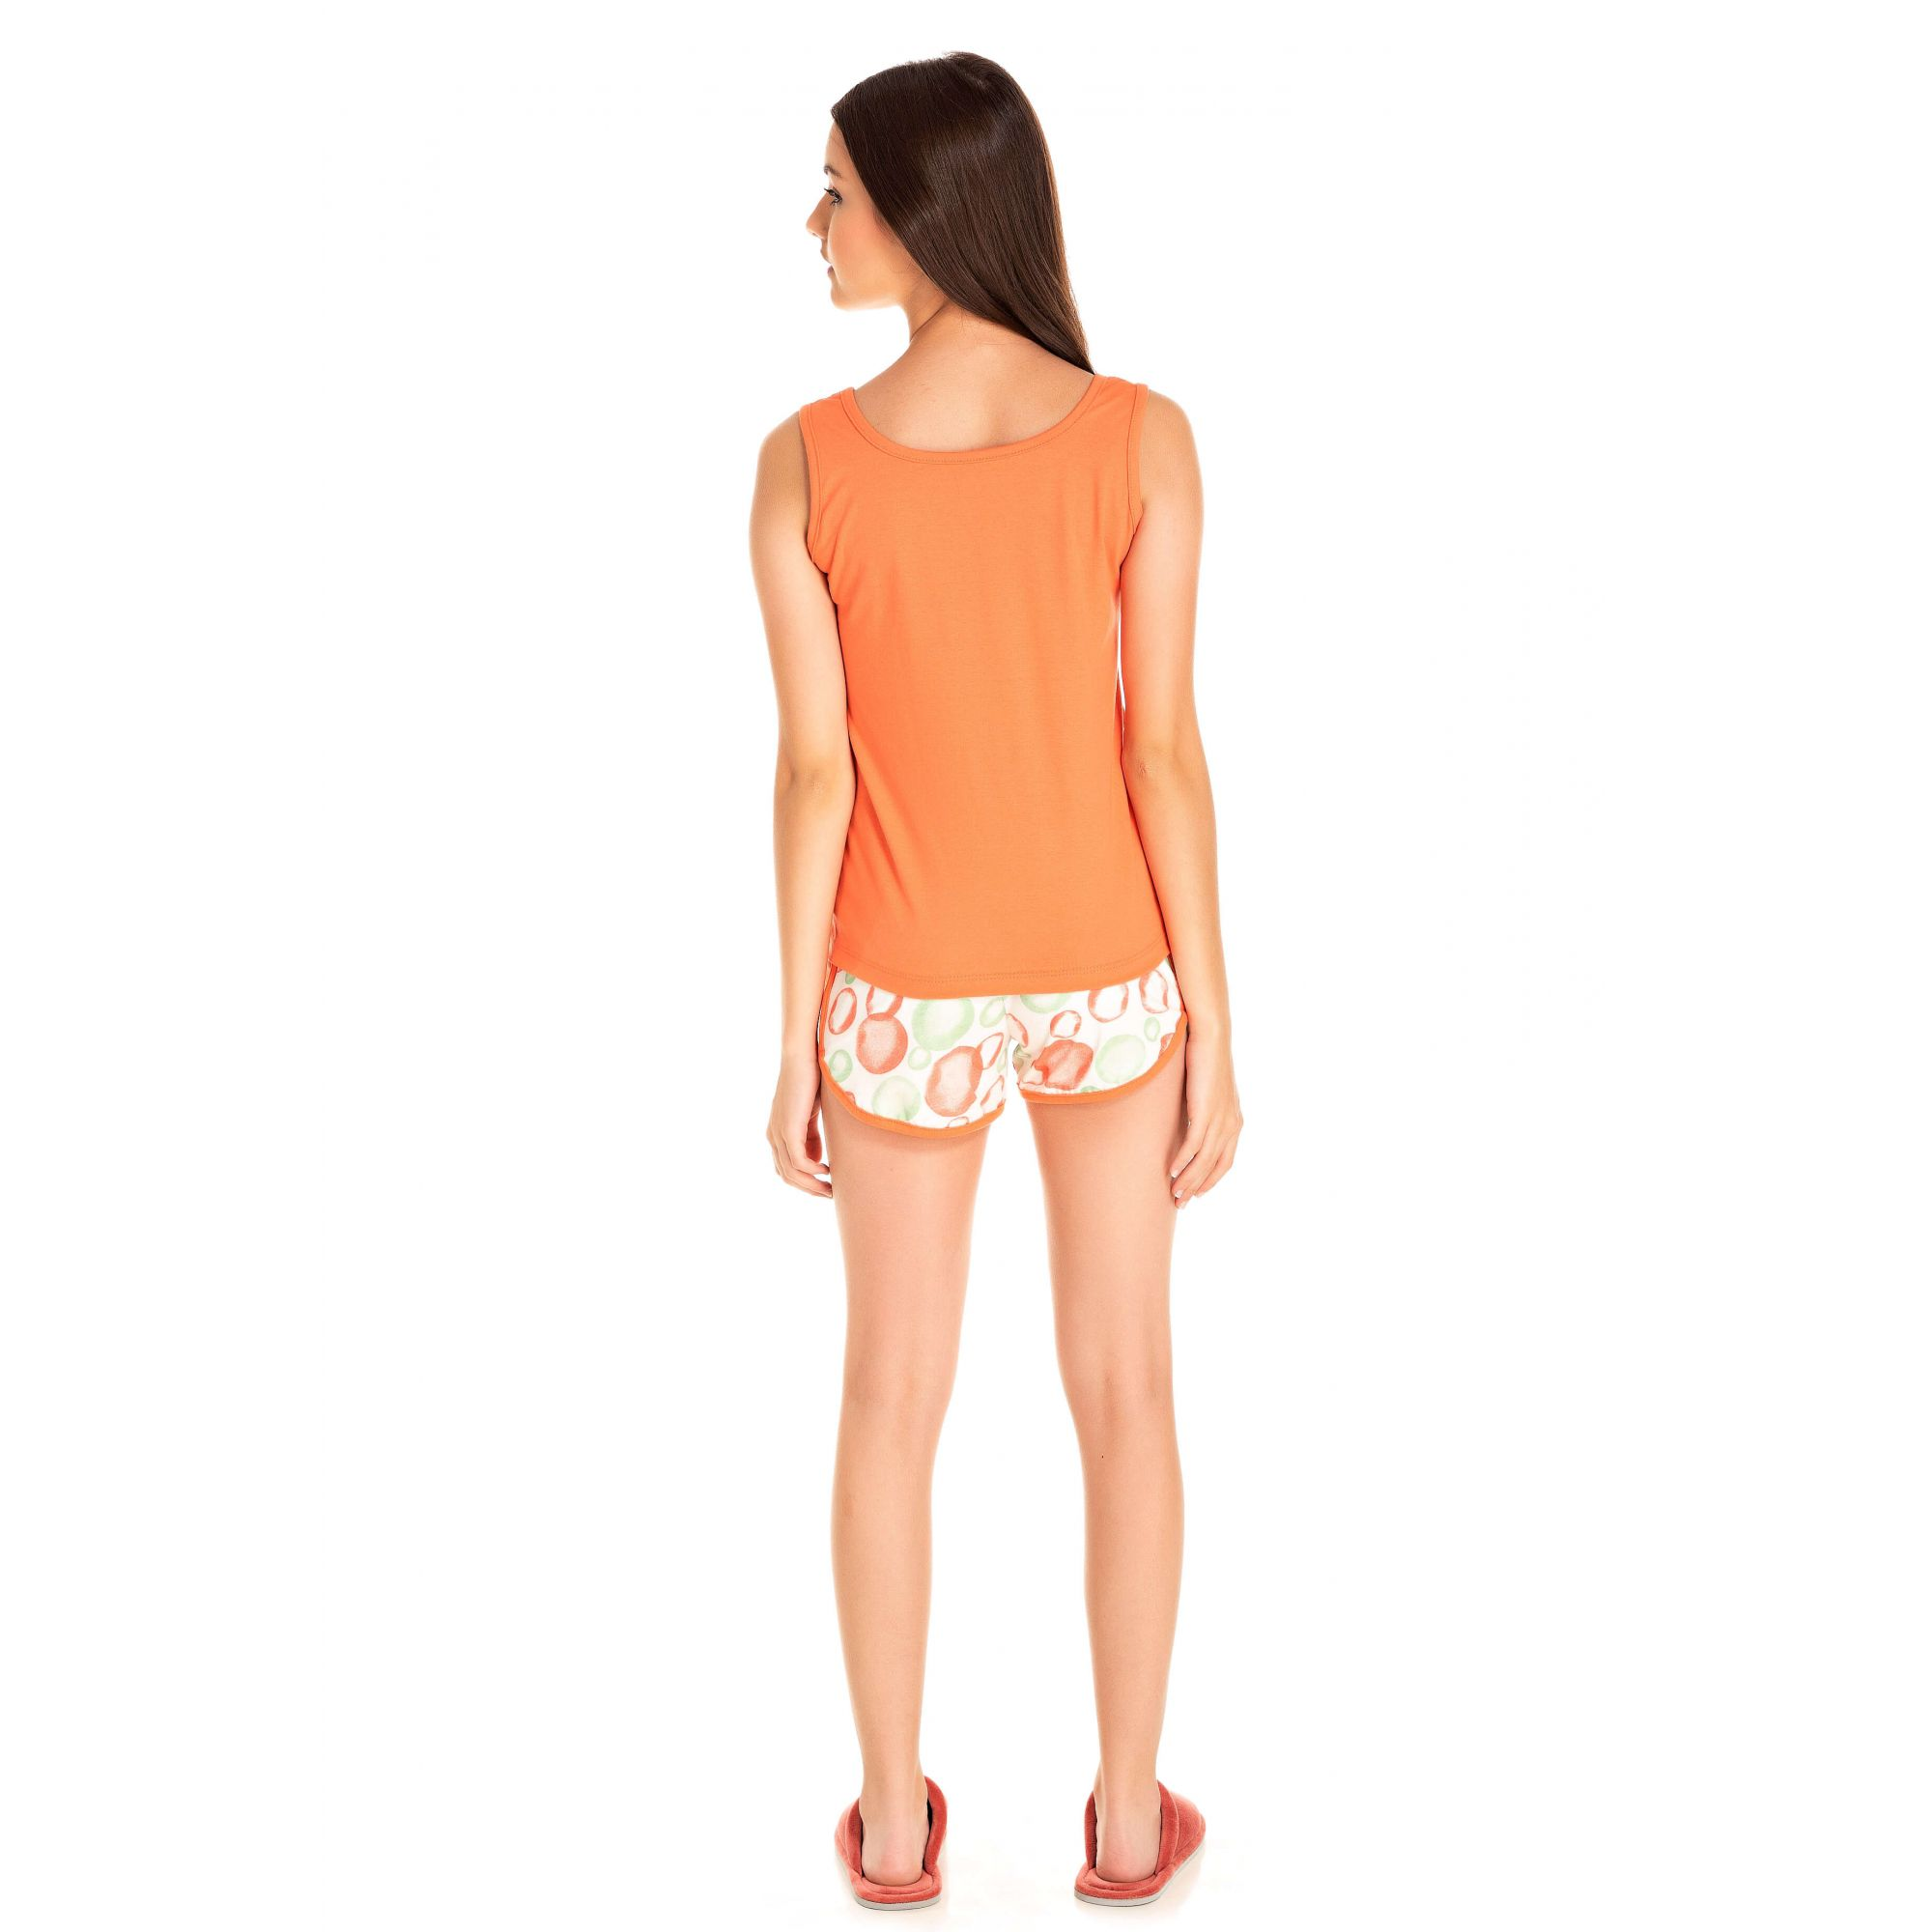 221/A - Short Doll Juvenil Feminino Summer